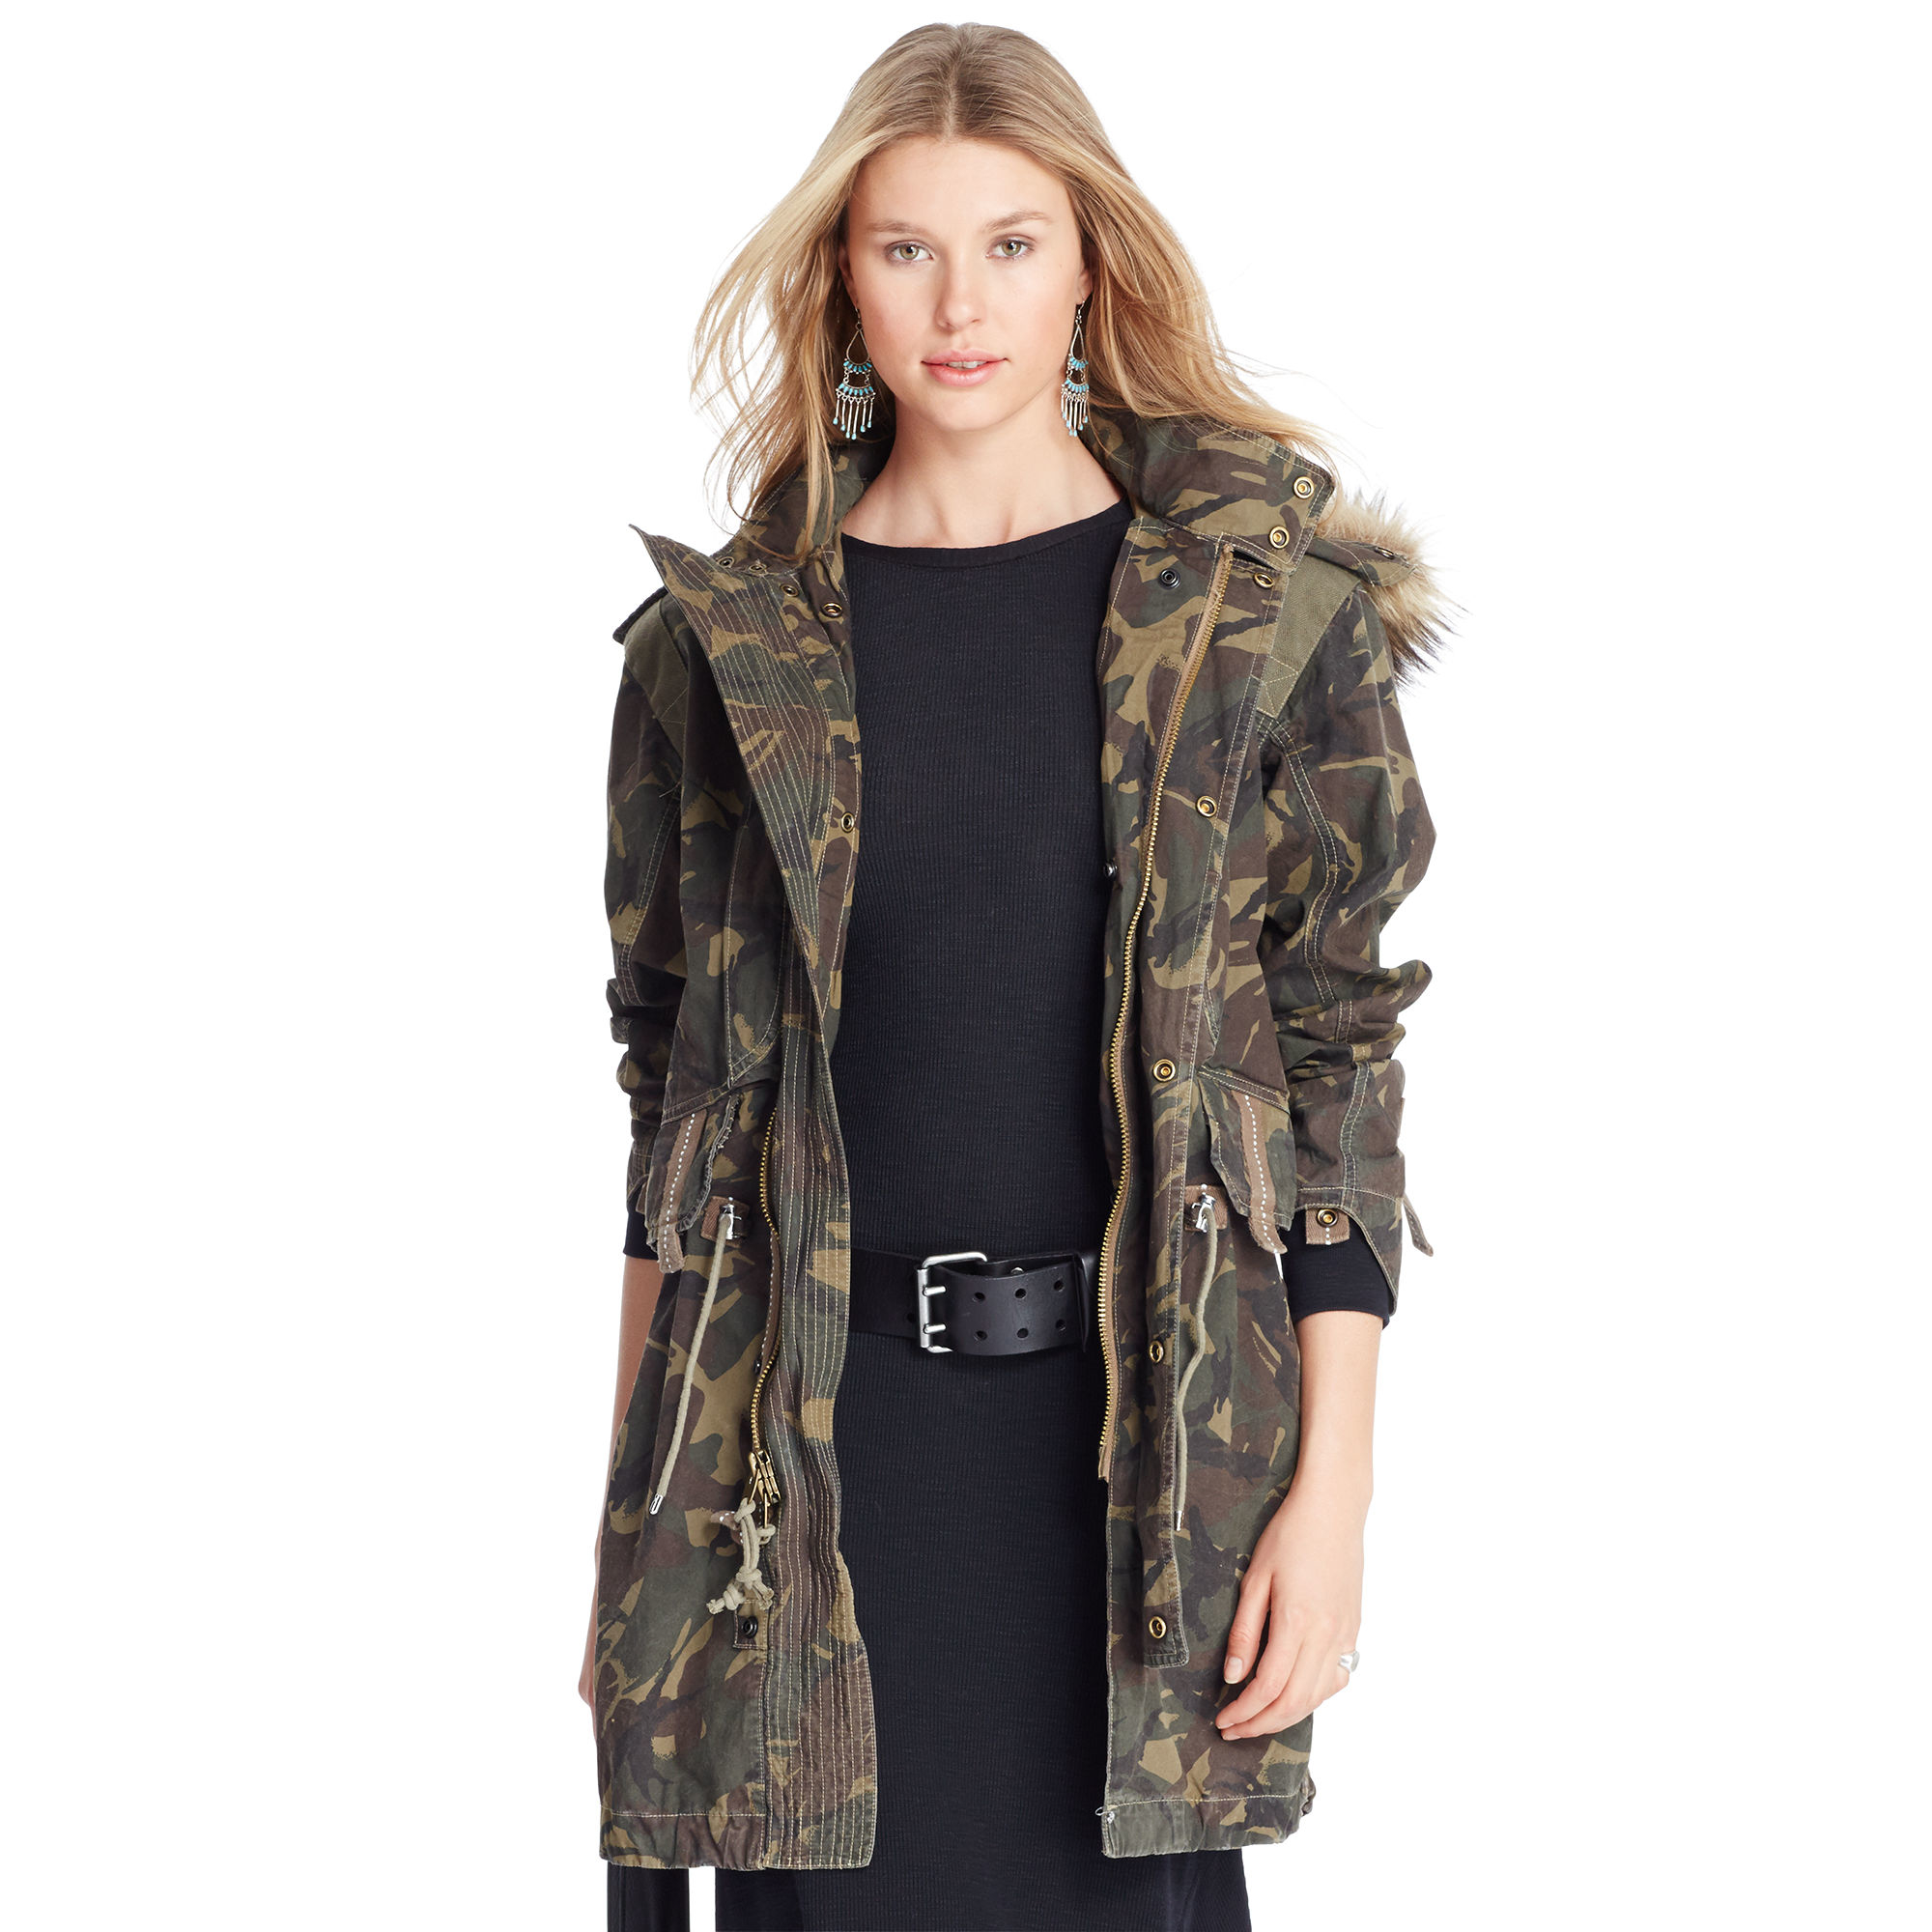 Lyst - Polo Ralph Lauren Camouflage Hooded Utility Coat in ...